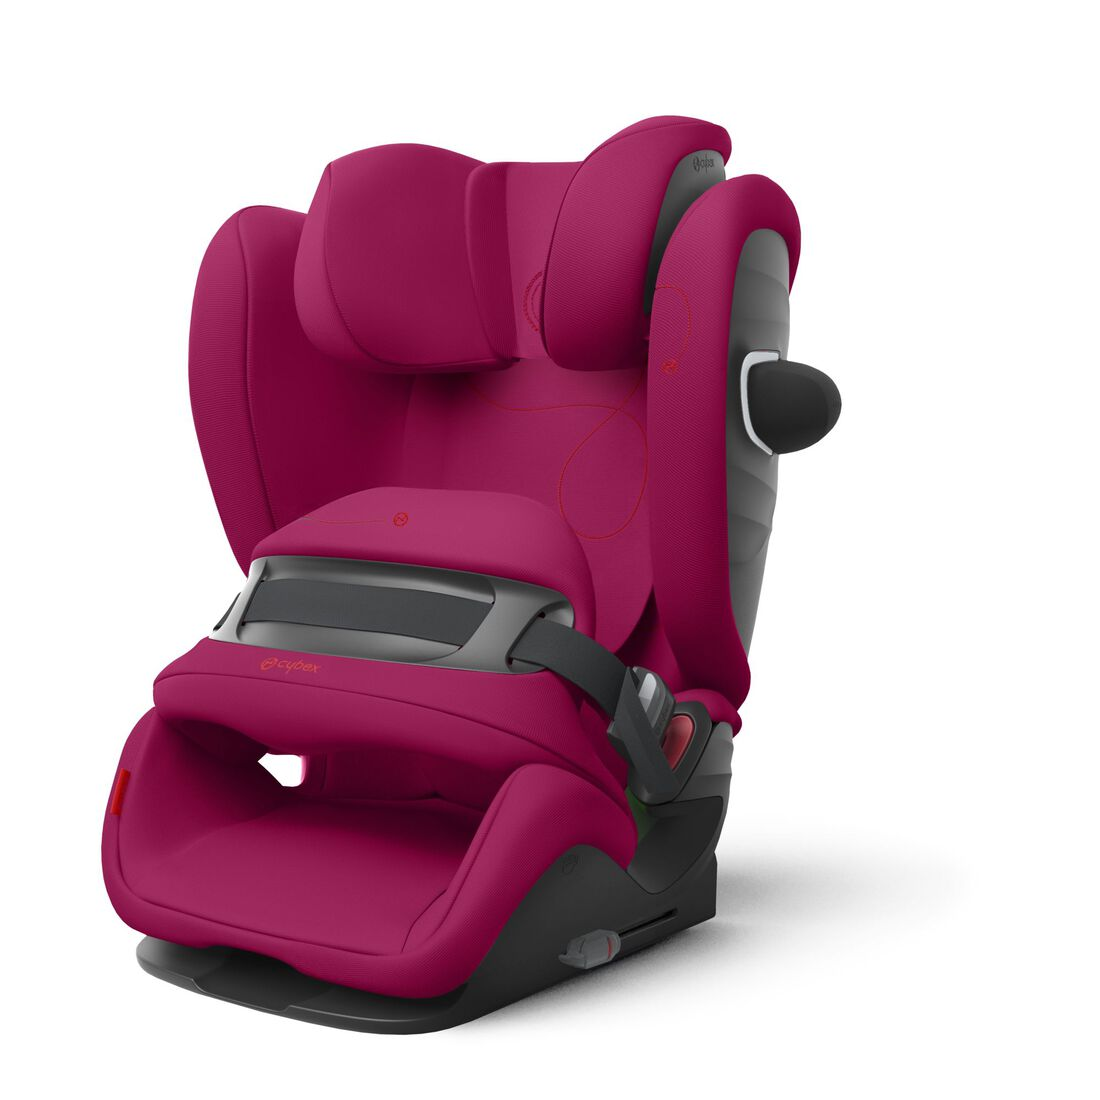 CYBEX Pallas G i-Size - Magnolia Pink in Magnolia Pink large image number 1